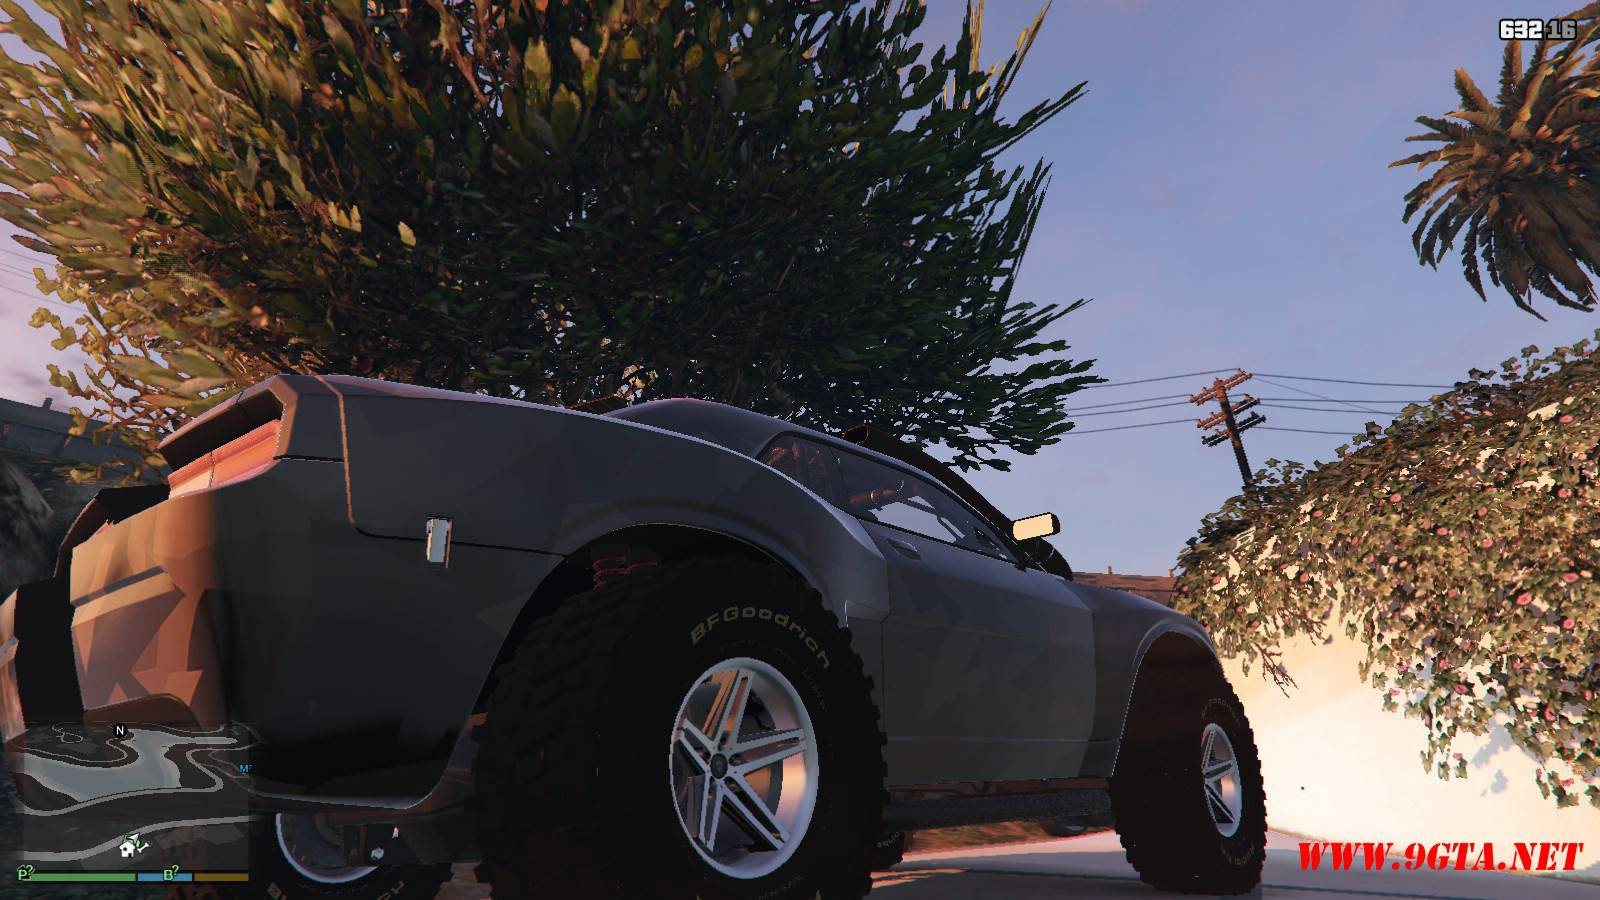 Dodge Charger RAID v1.0 Mod For GTA5 (6)